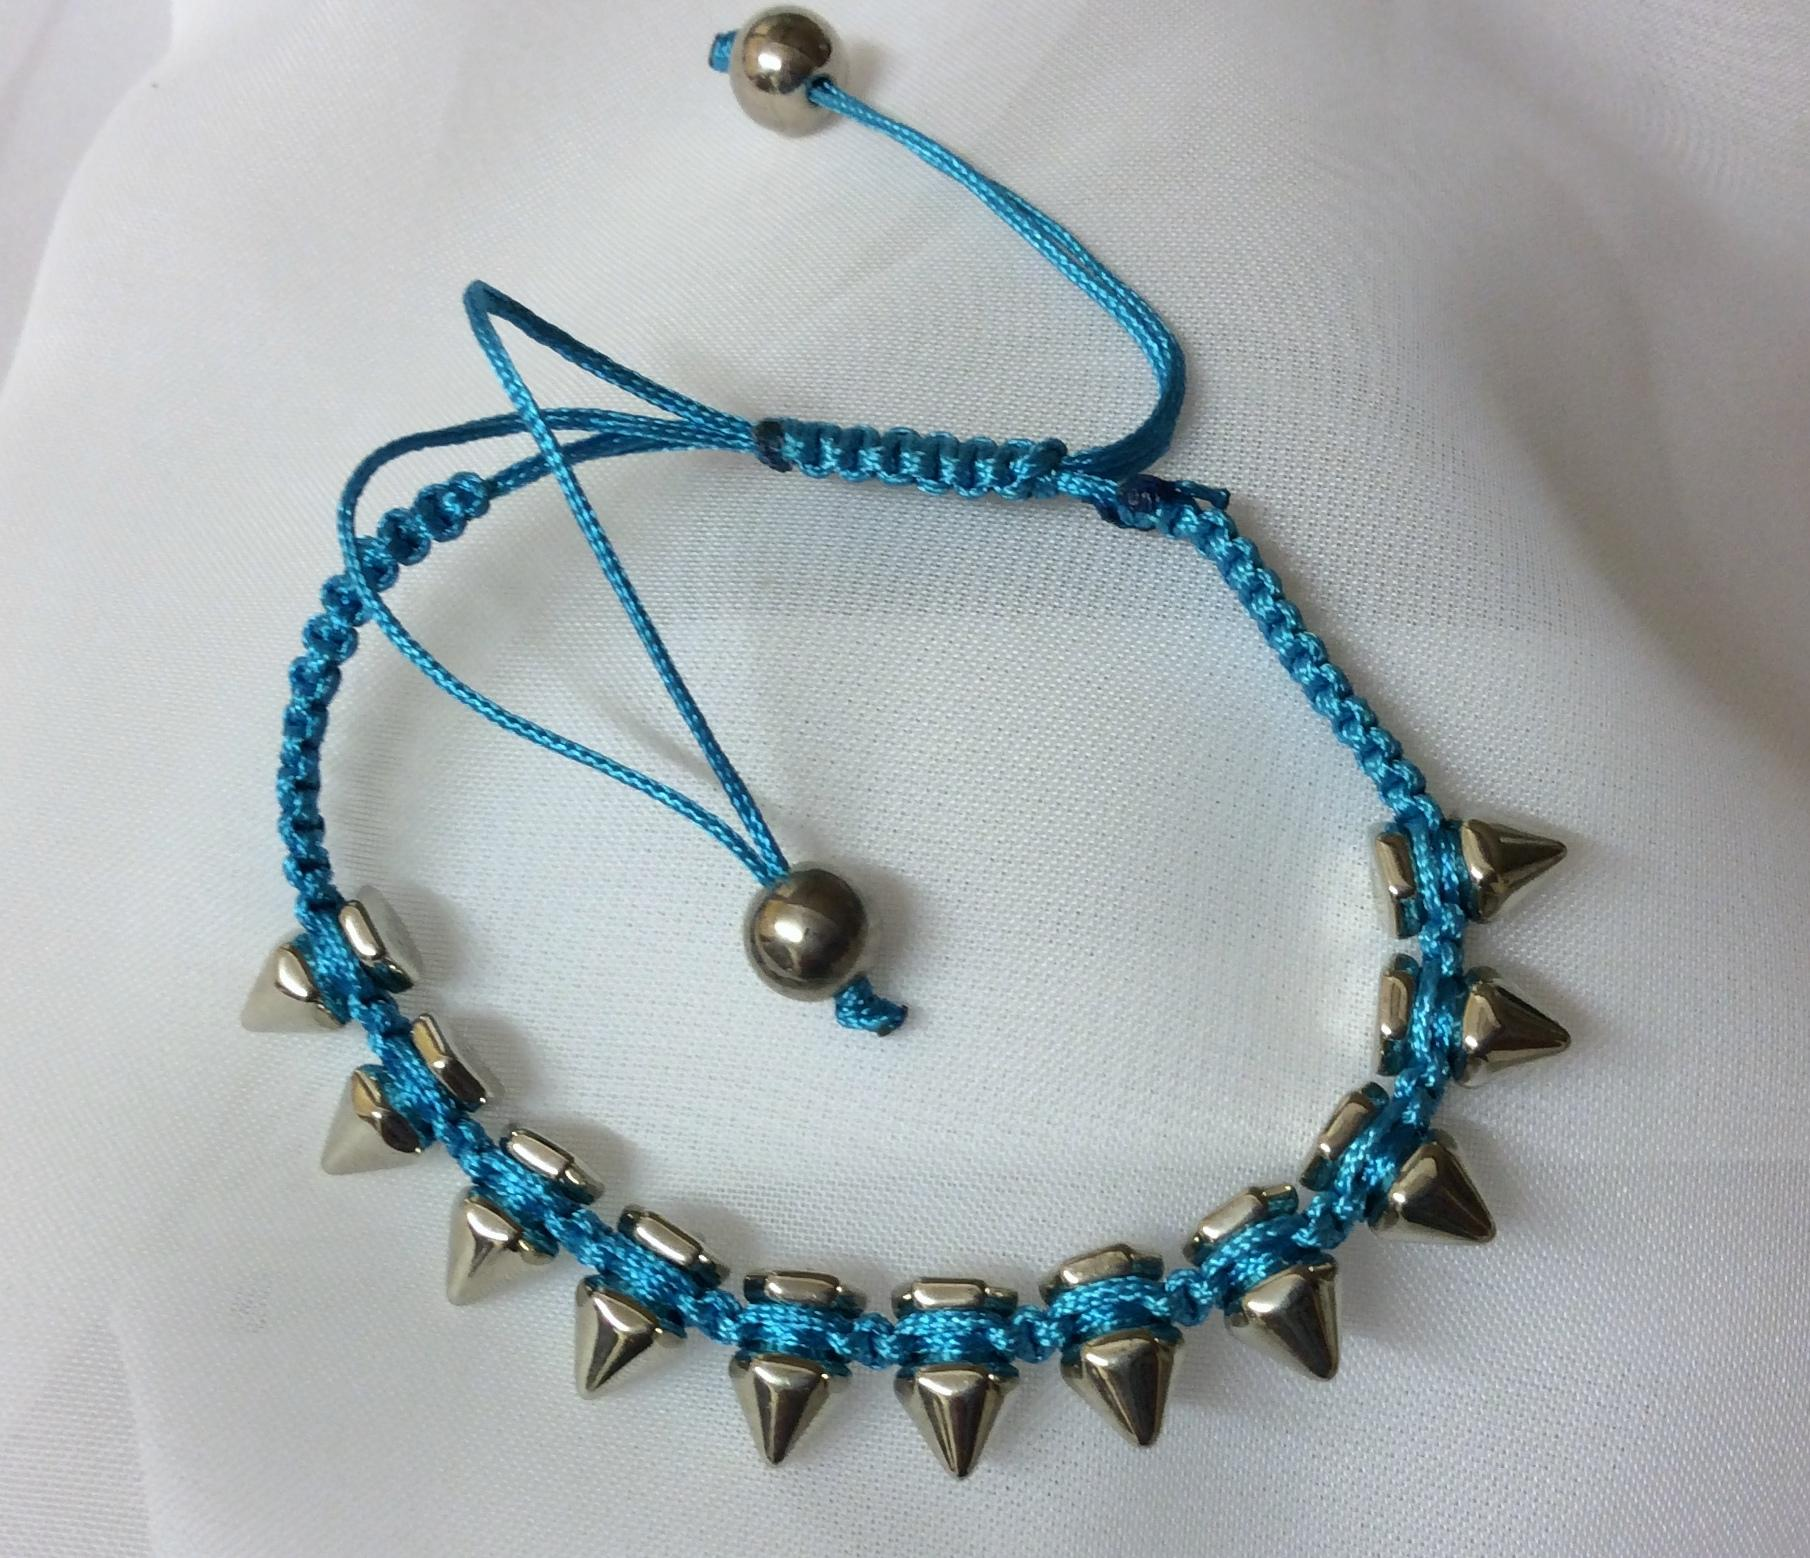 Bracelet Metal Spike Macrame Adjustable Blue